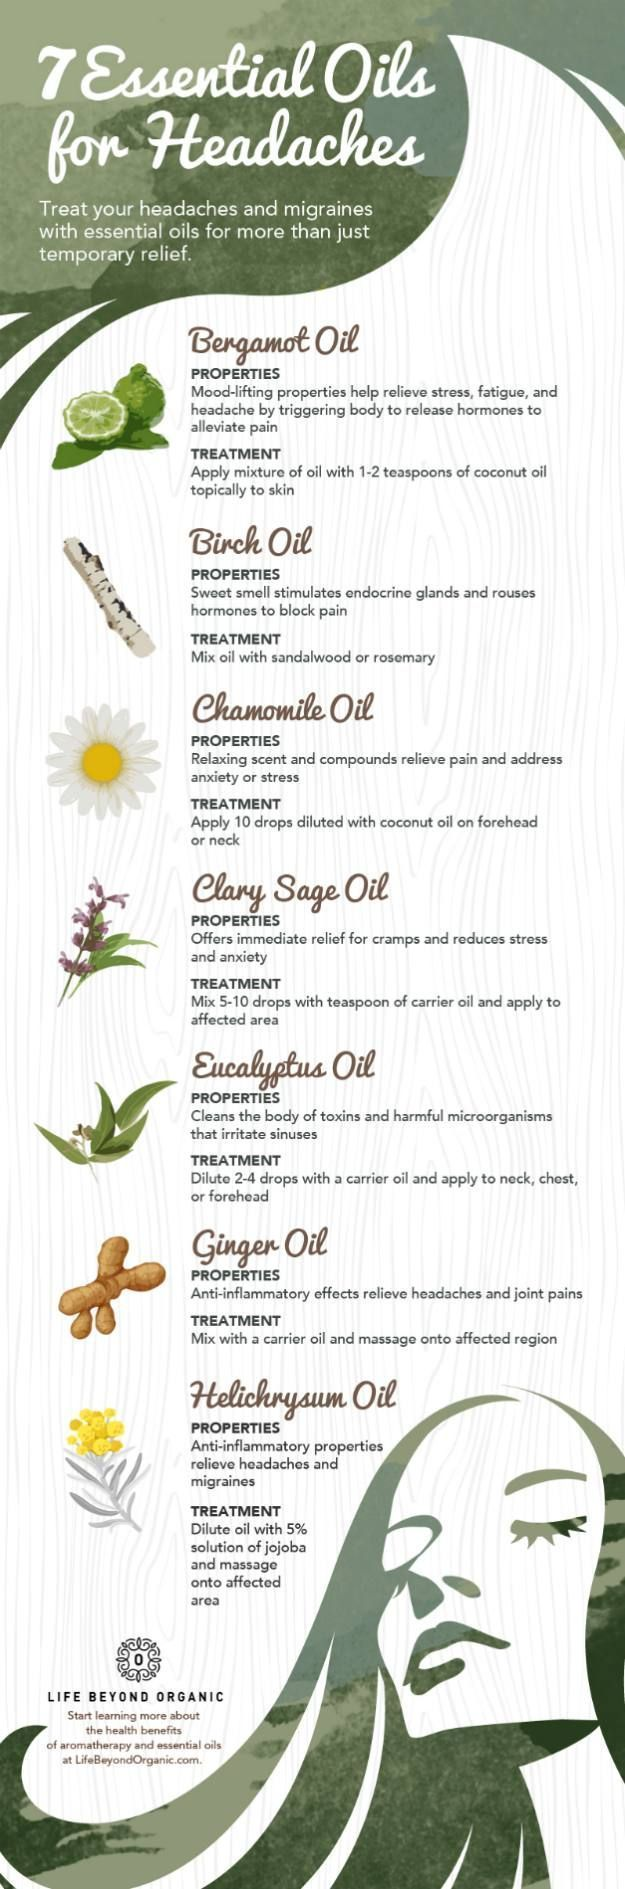 infographic   7 essential oils for headaches #headacheinfographic #migraineinfographics